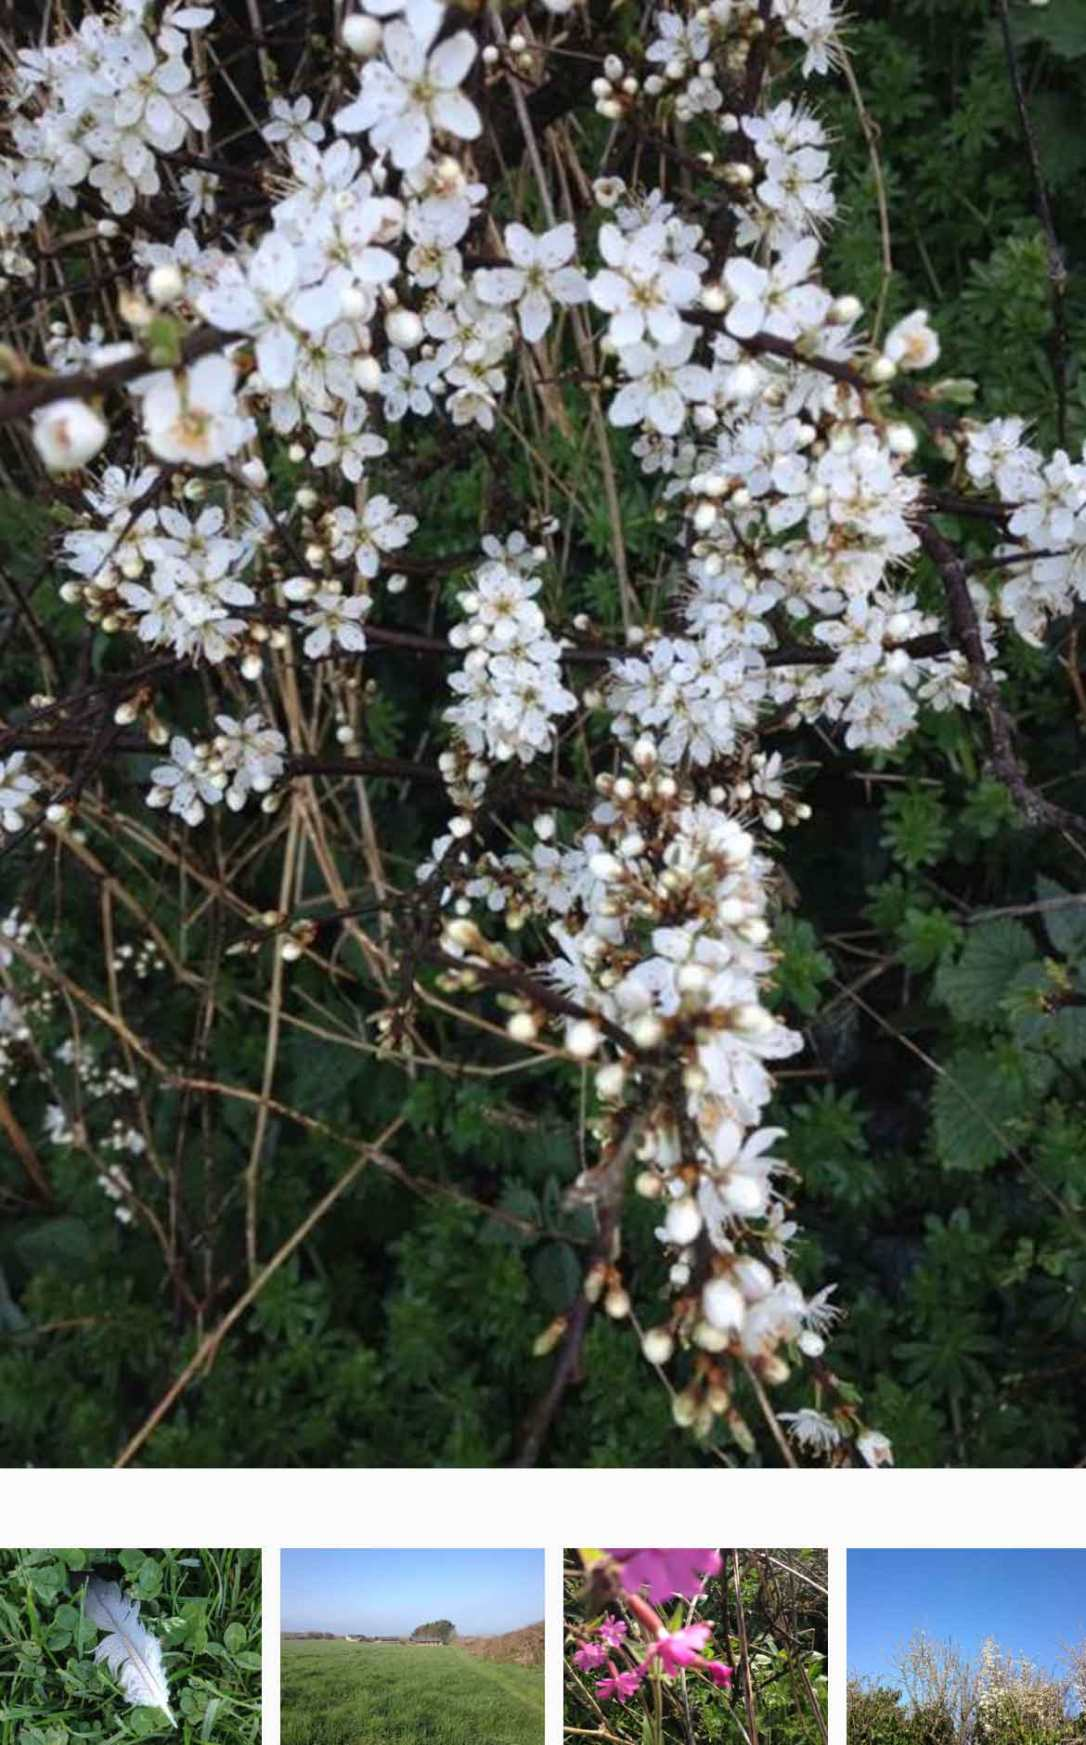 wildflowers, blossom, a feather and blue sky at barefoot glamping Cornwall